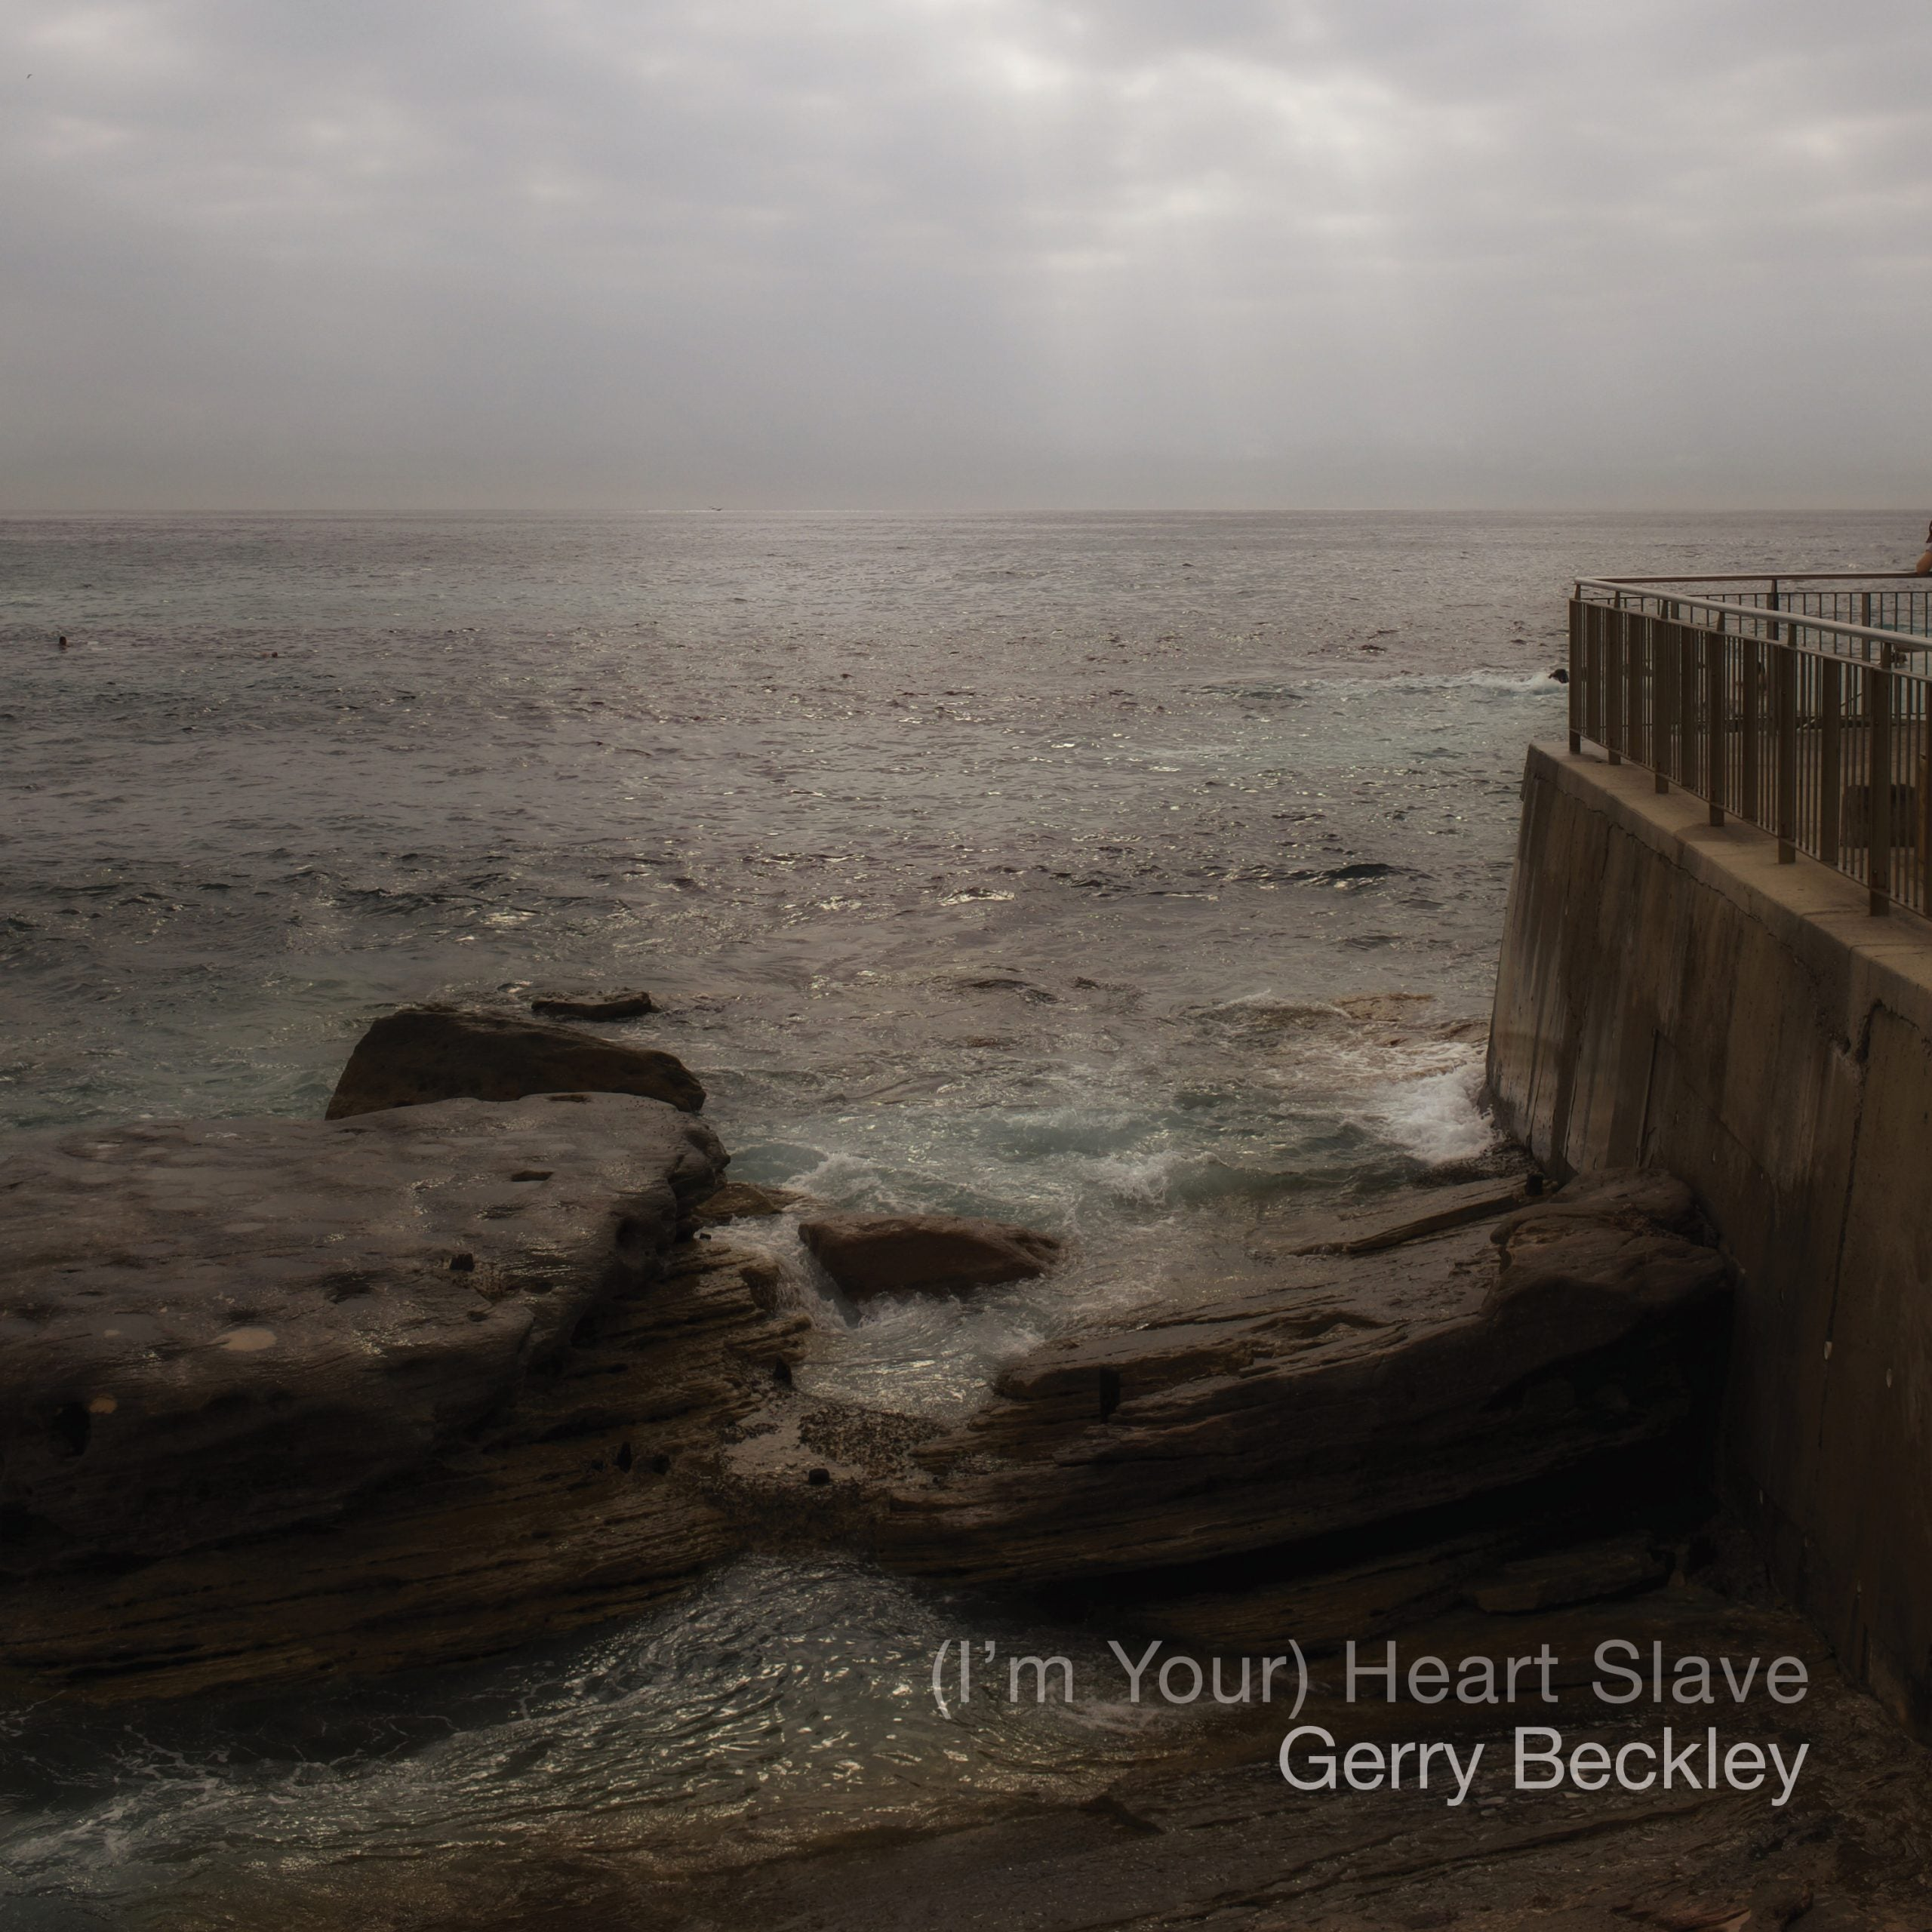 Gerry Beckley - (I'm Your) Heart Slave